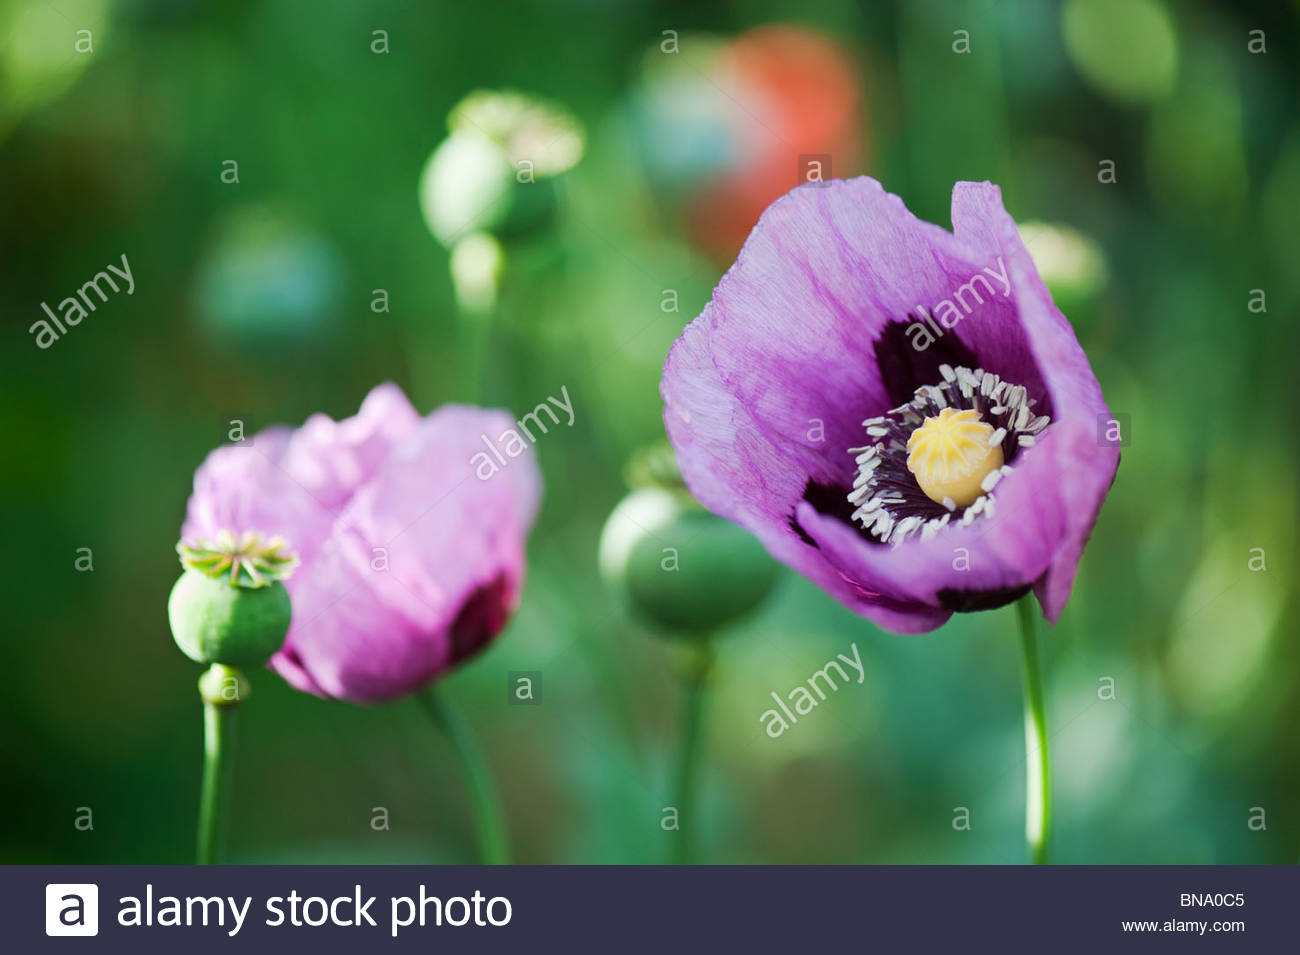 Papaver somniferum. Opium poppy and seed head in an english garden - Stock Image